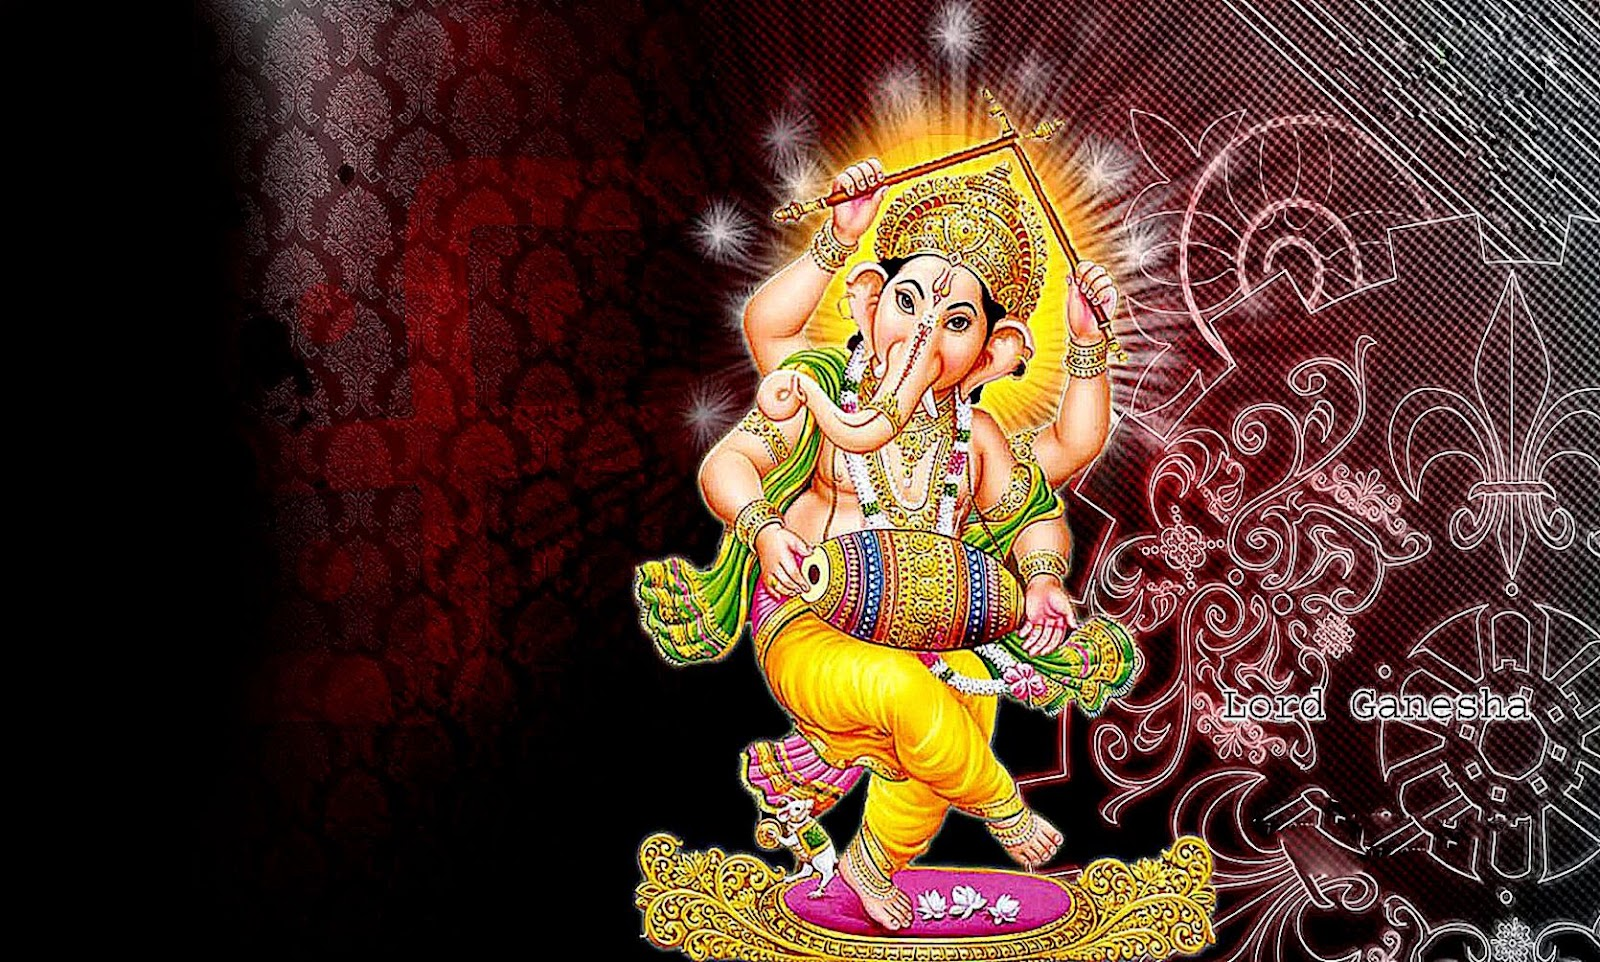 Lord Ganesha Hd Wallpapers: Lord Ganesha Hd Wallpaper